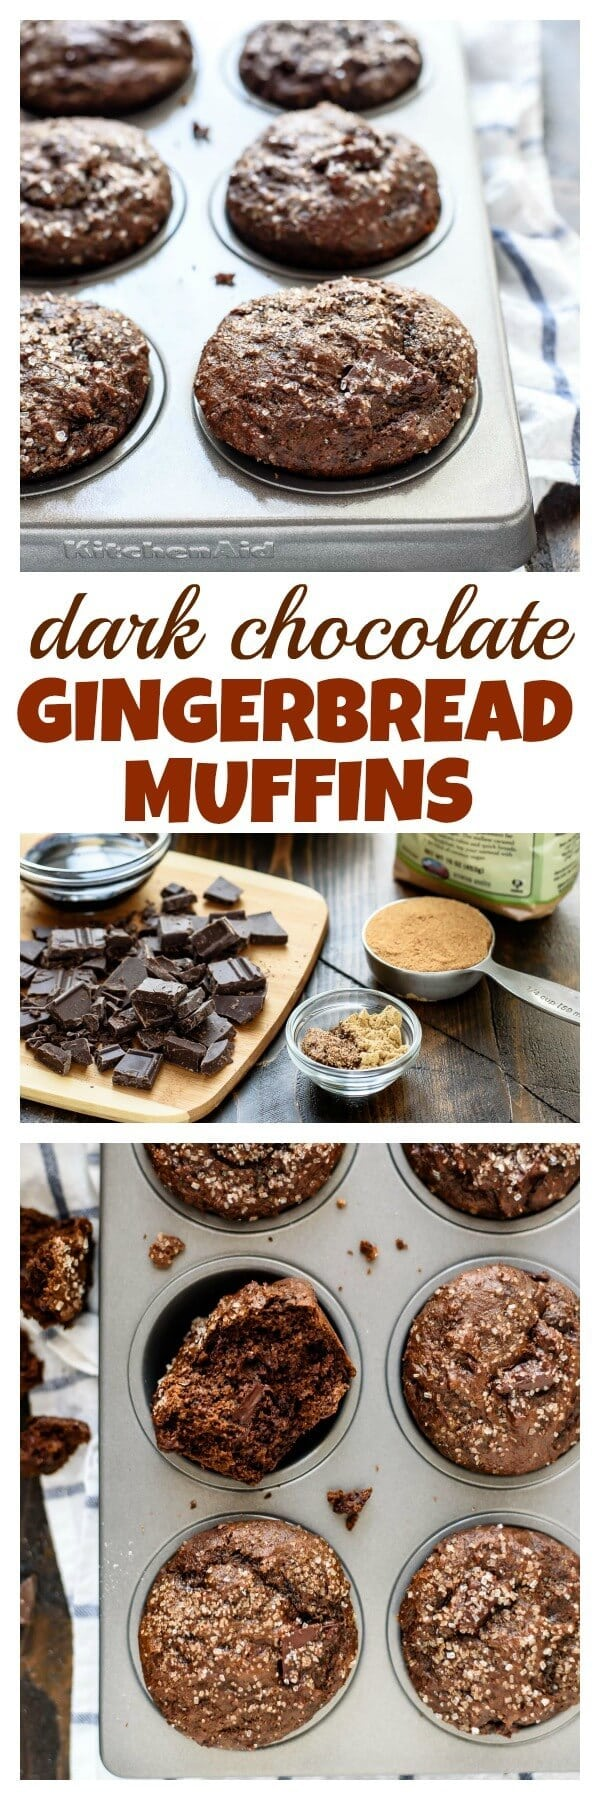 This is the BEST gingerbread Muffin recipe. Moist and fluffy with lots of holiday spices and dark chocolate. Made with coconut oil and Greek yogurt, you'll never believe these are good for you too!